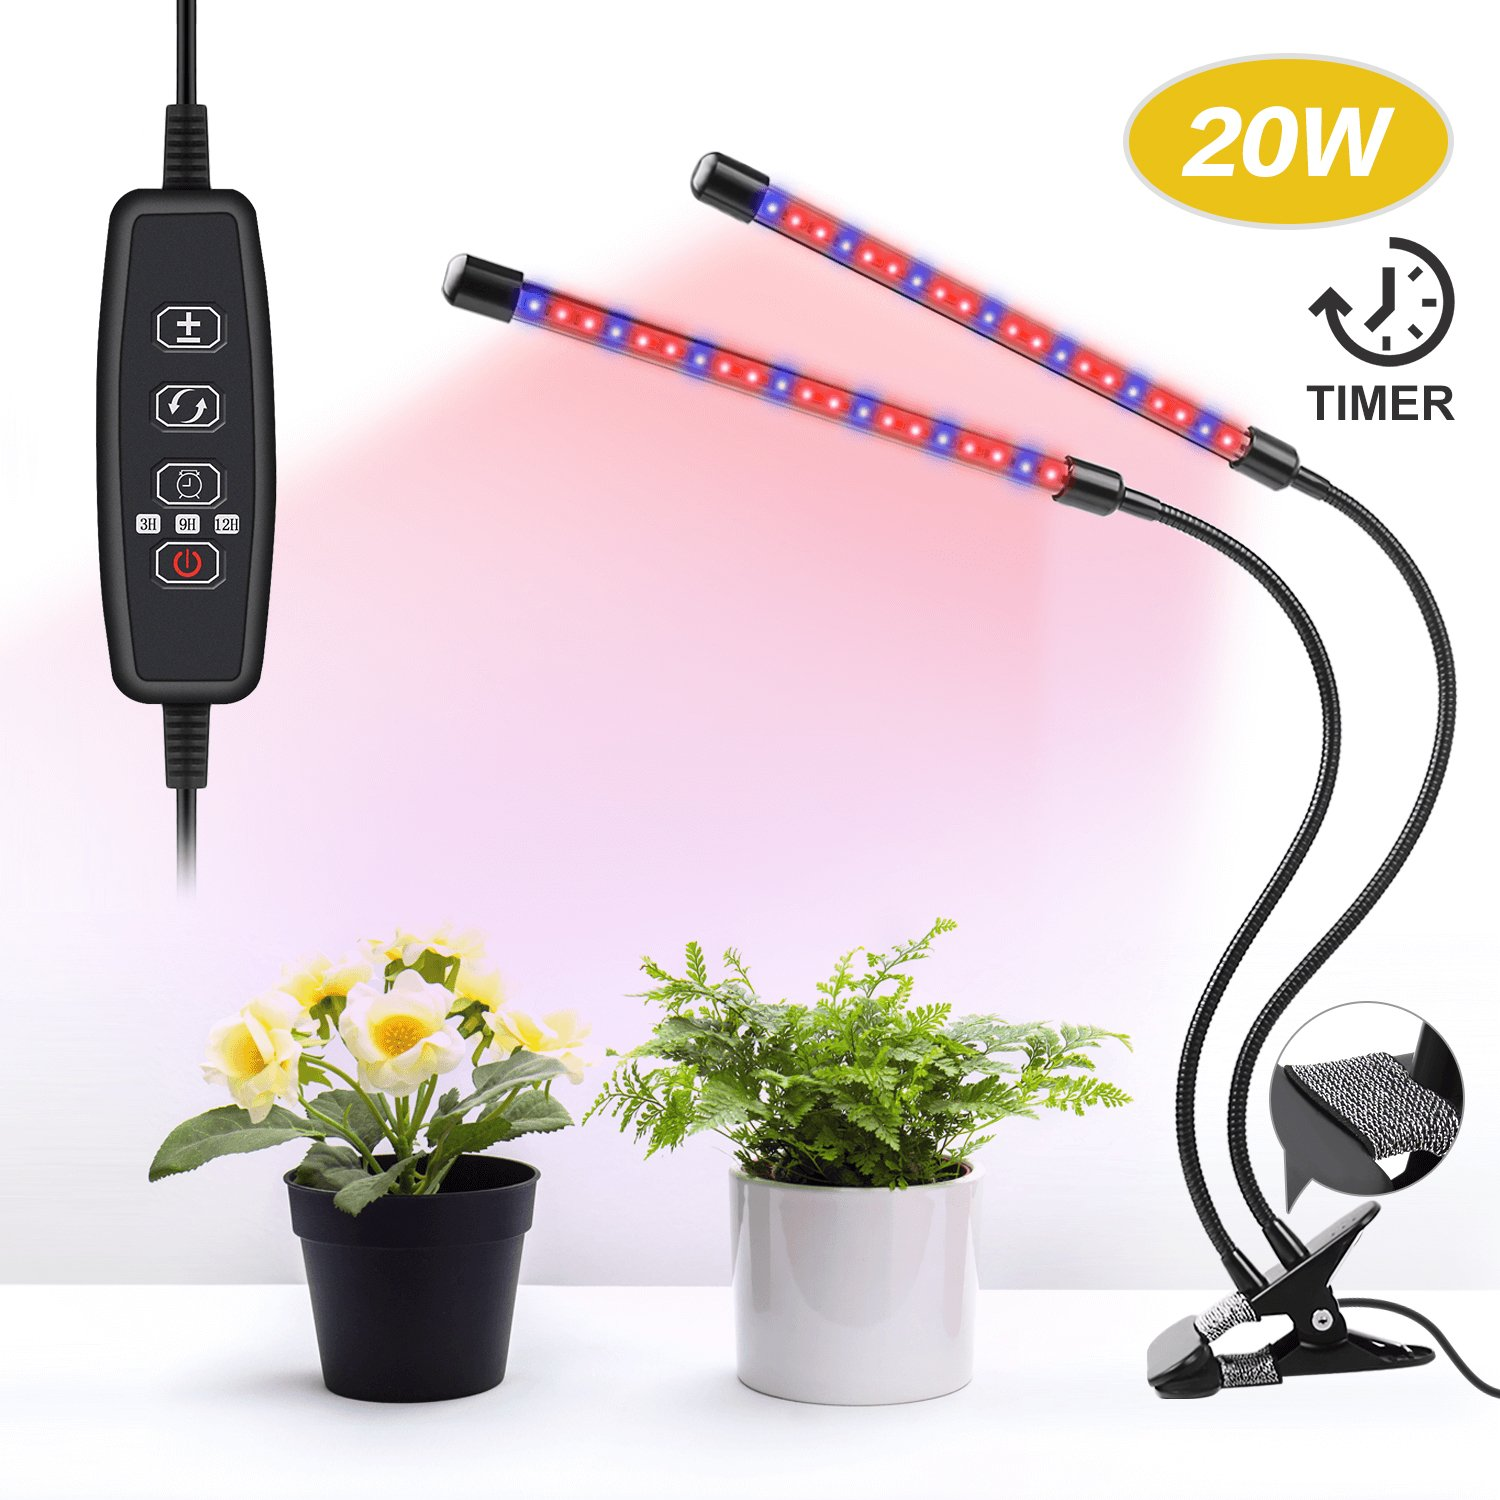 UNIWA Grow Light 20W Dual Head Plant Grow Lamp with 40 LED Red/Blue Spectrum 360° Gooseneck 5 Dimmable Levels Desktop Grow Light for Indoor Plants Hydroponics Greenhouse Gardening